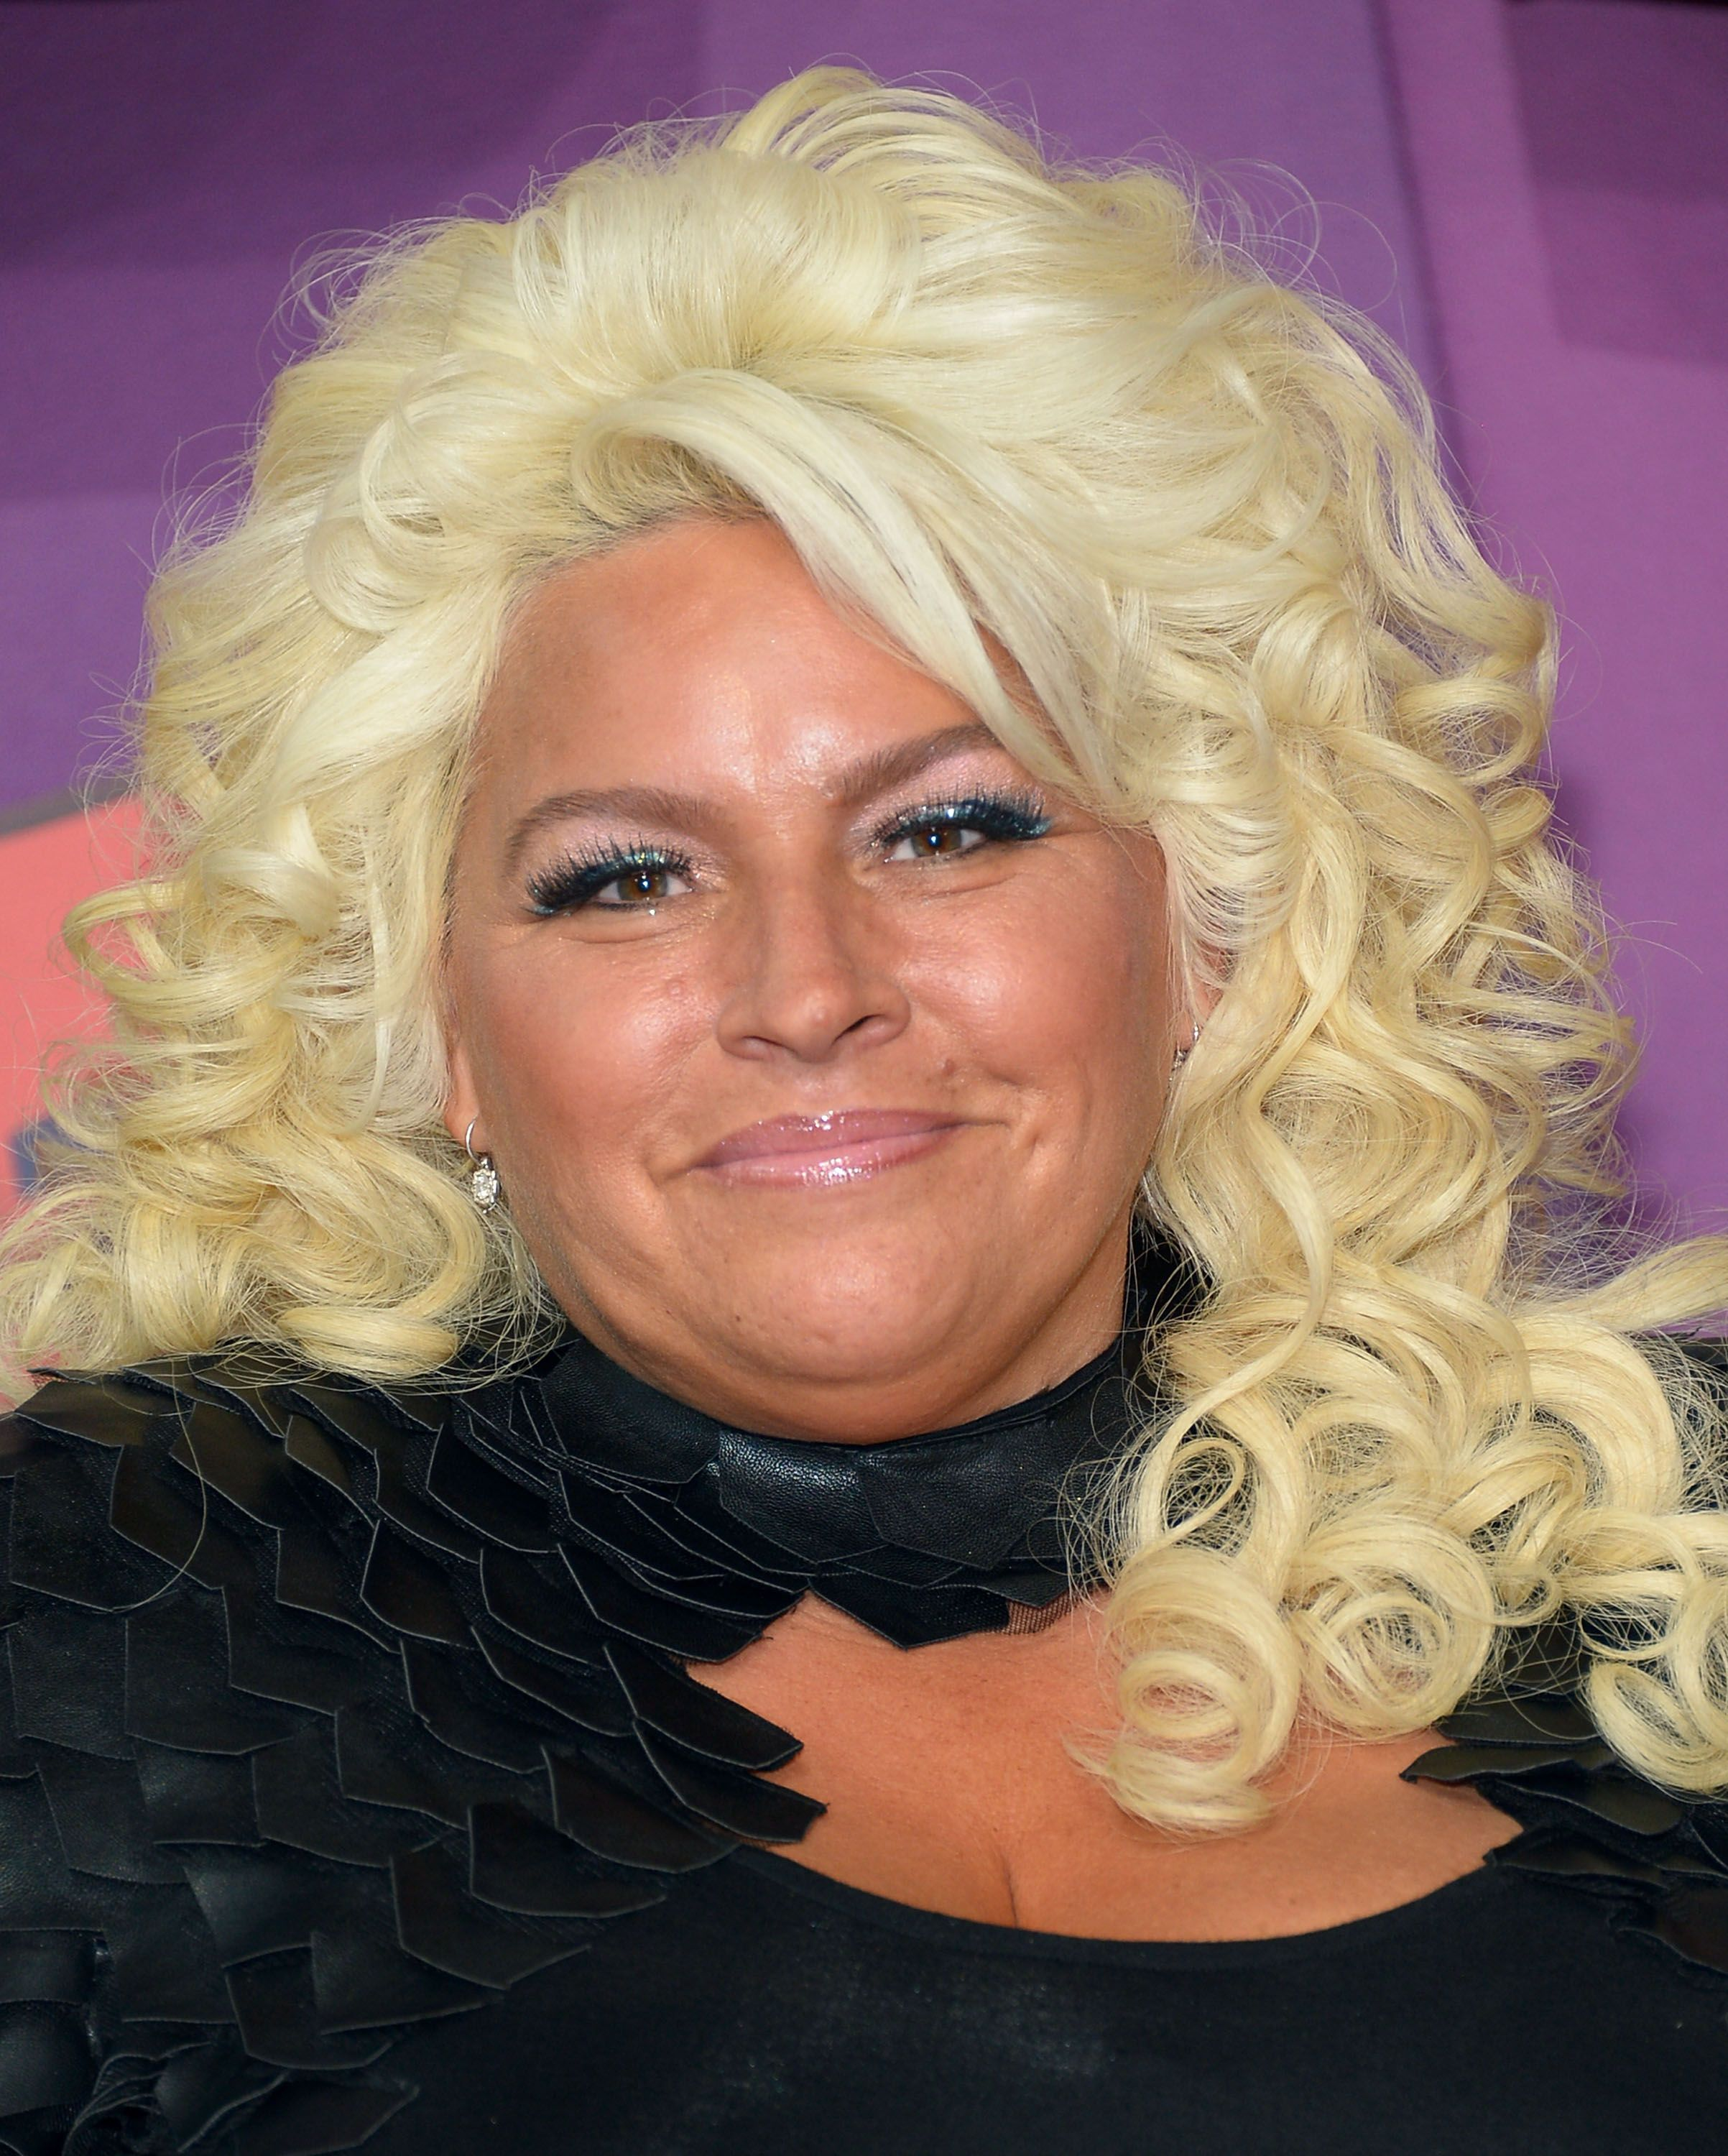 Beth Chapman at the CMT Music Awards at the Bridgestone Arena on June 4, 2014, in Nashville, Tennessee | Photo: Getty Images